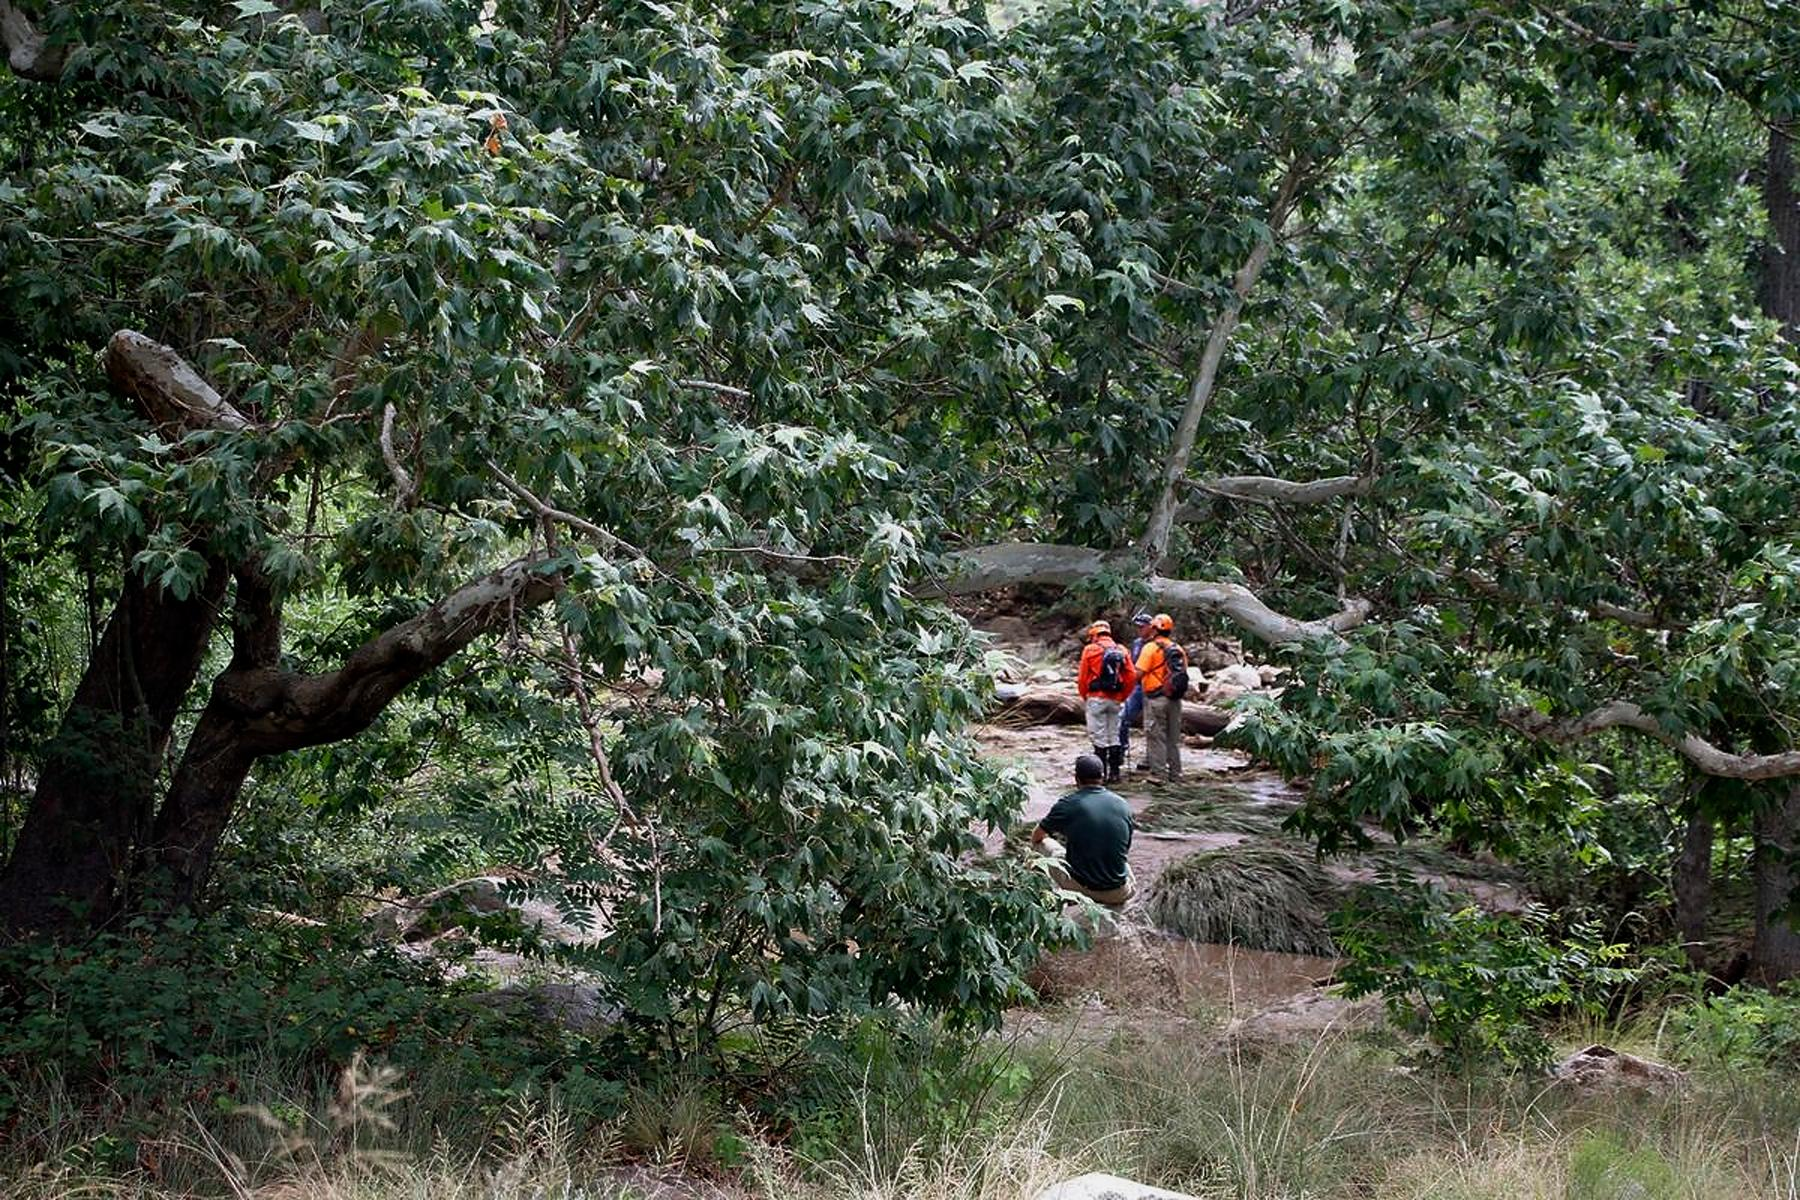 Tonto Search and Rescue volunteers search for missing swimmers near the Water Wheel Campground on Sunday morning, July 16, 2017, in the Tonto National Forest, Ariz., following Saturday's deadly flash-flooding at a normally tranquil swimming area in the national forest. The flooding came after a severe thunderstorm pounded down on a nearby remote area that had been burned by a recent wildfire, Water Wheel Fire and Medical District Fire Chief Ron Sattelmaier said. (Alexis Bechman/Payson Roundup via AP)